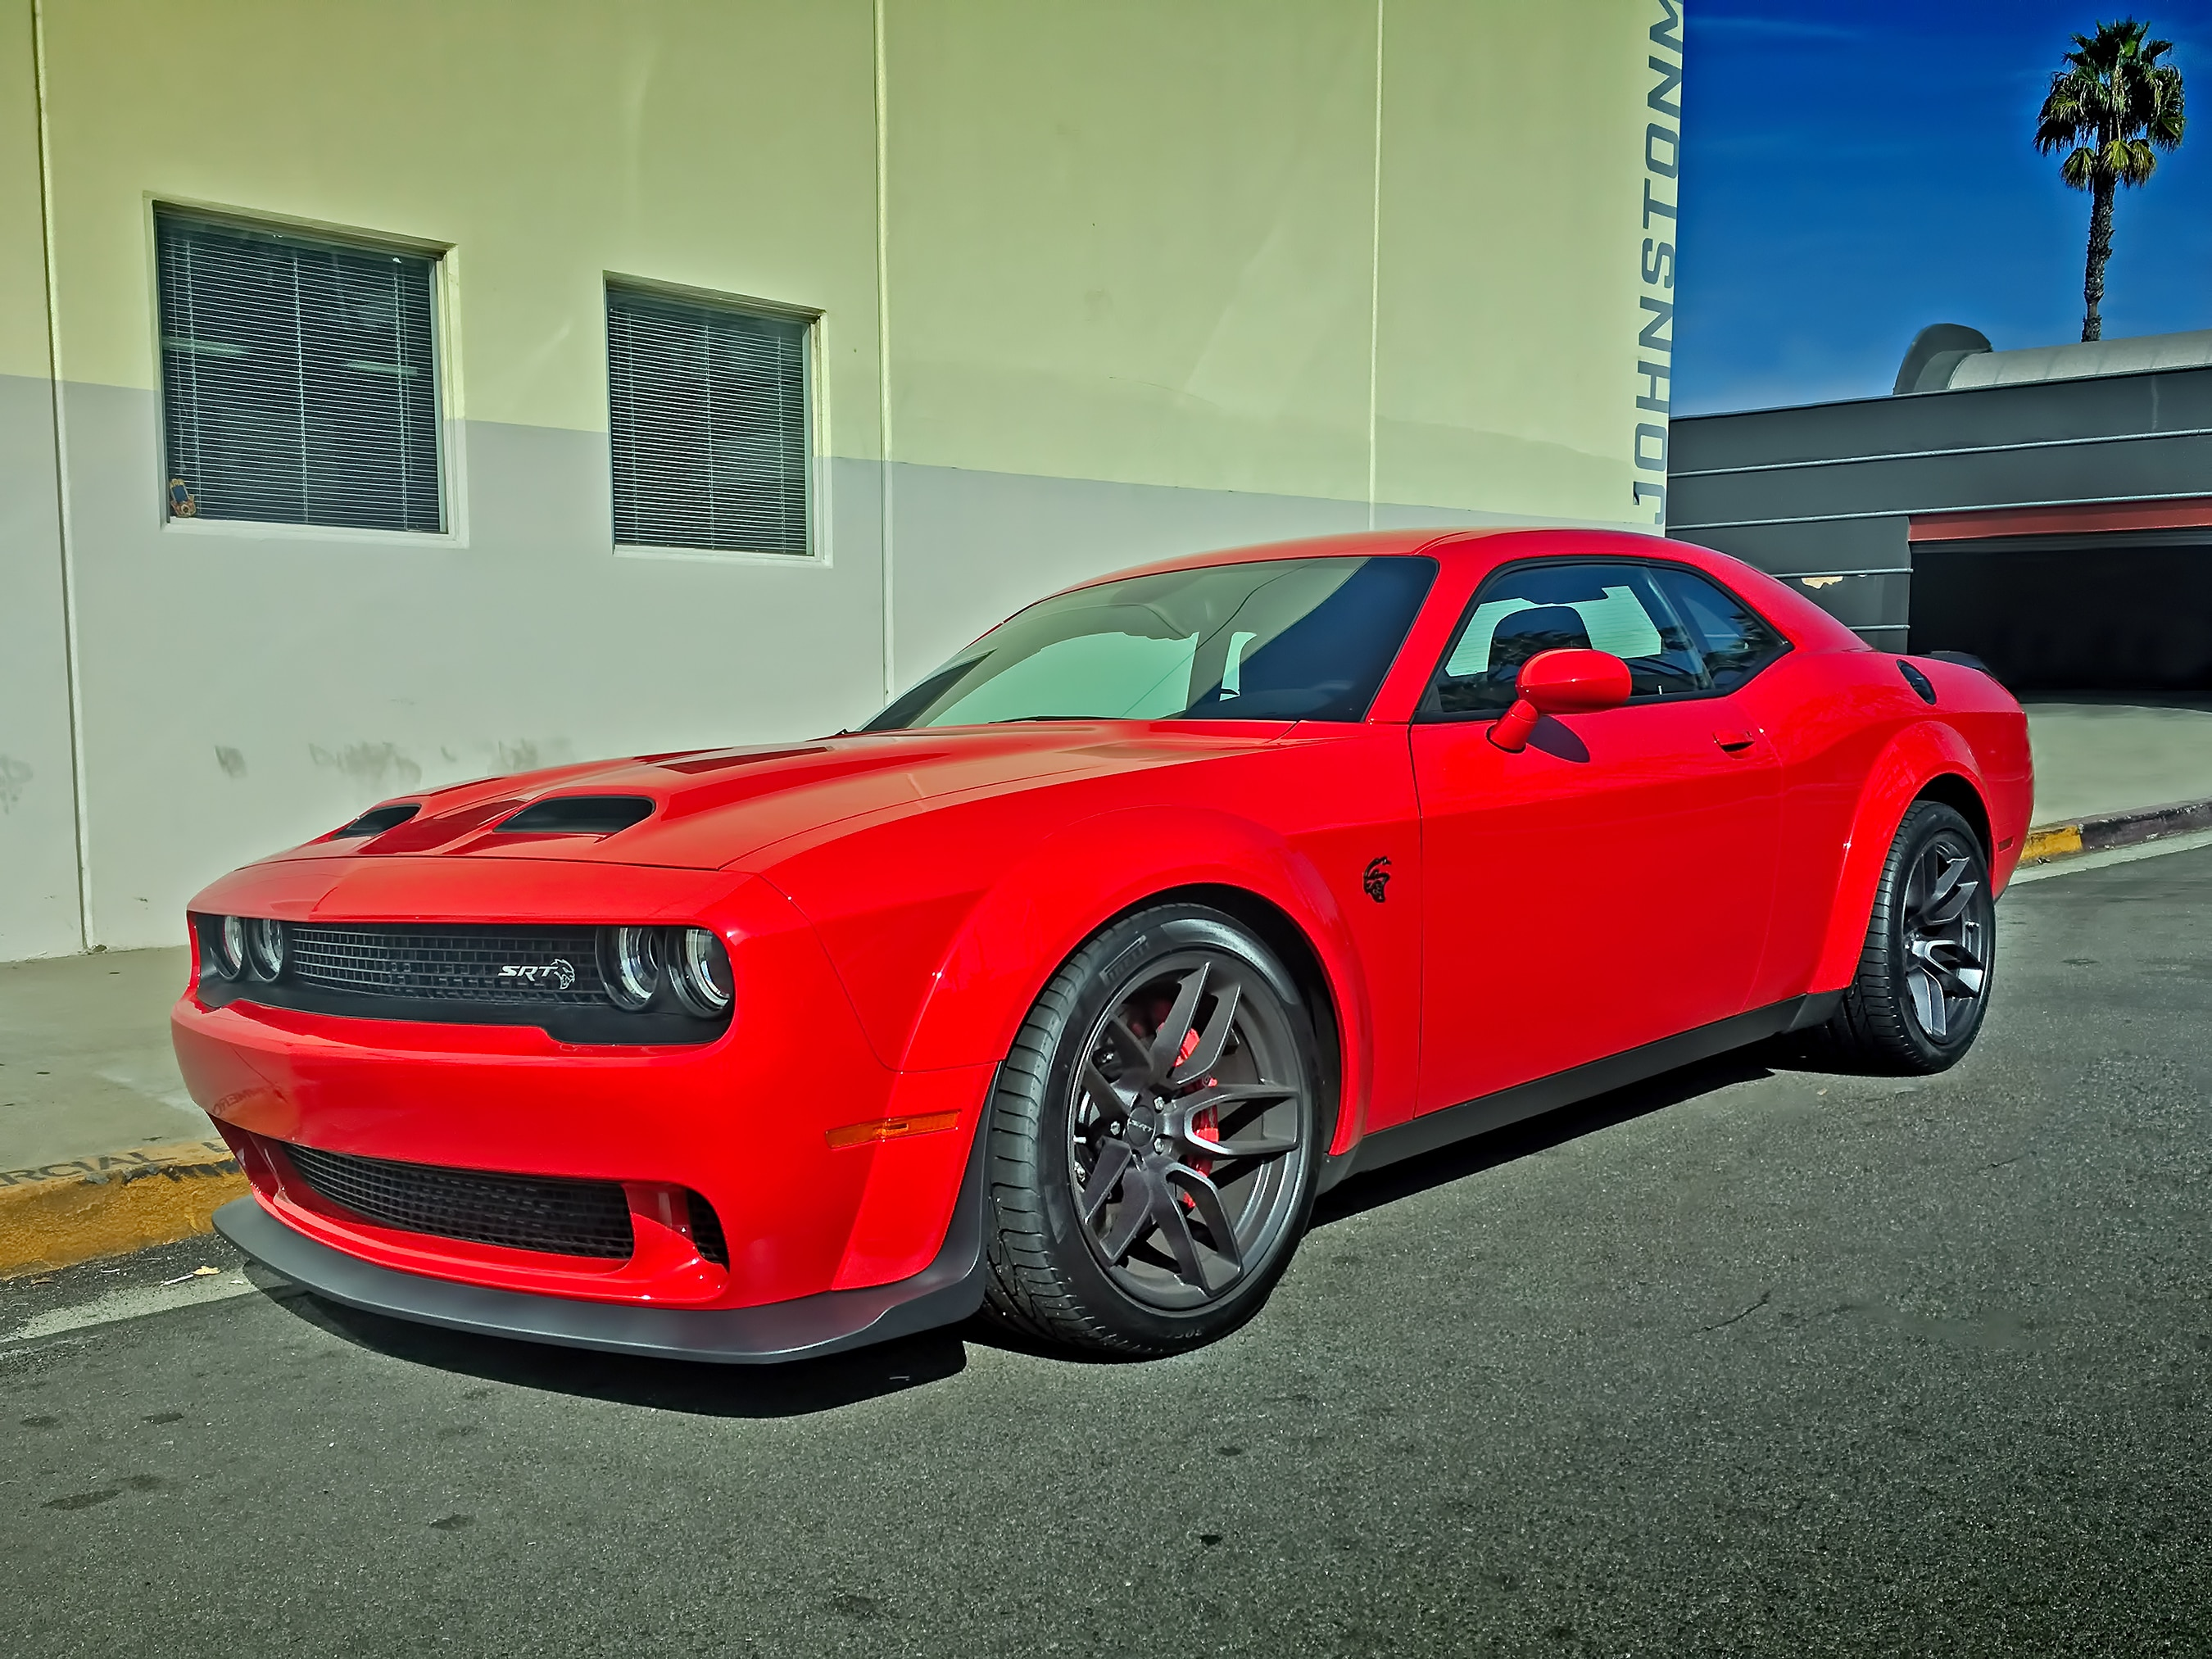 32 All New 2019 Challenger Srt8 Hellcat Release Date and Concept